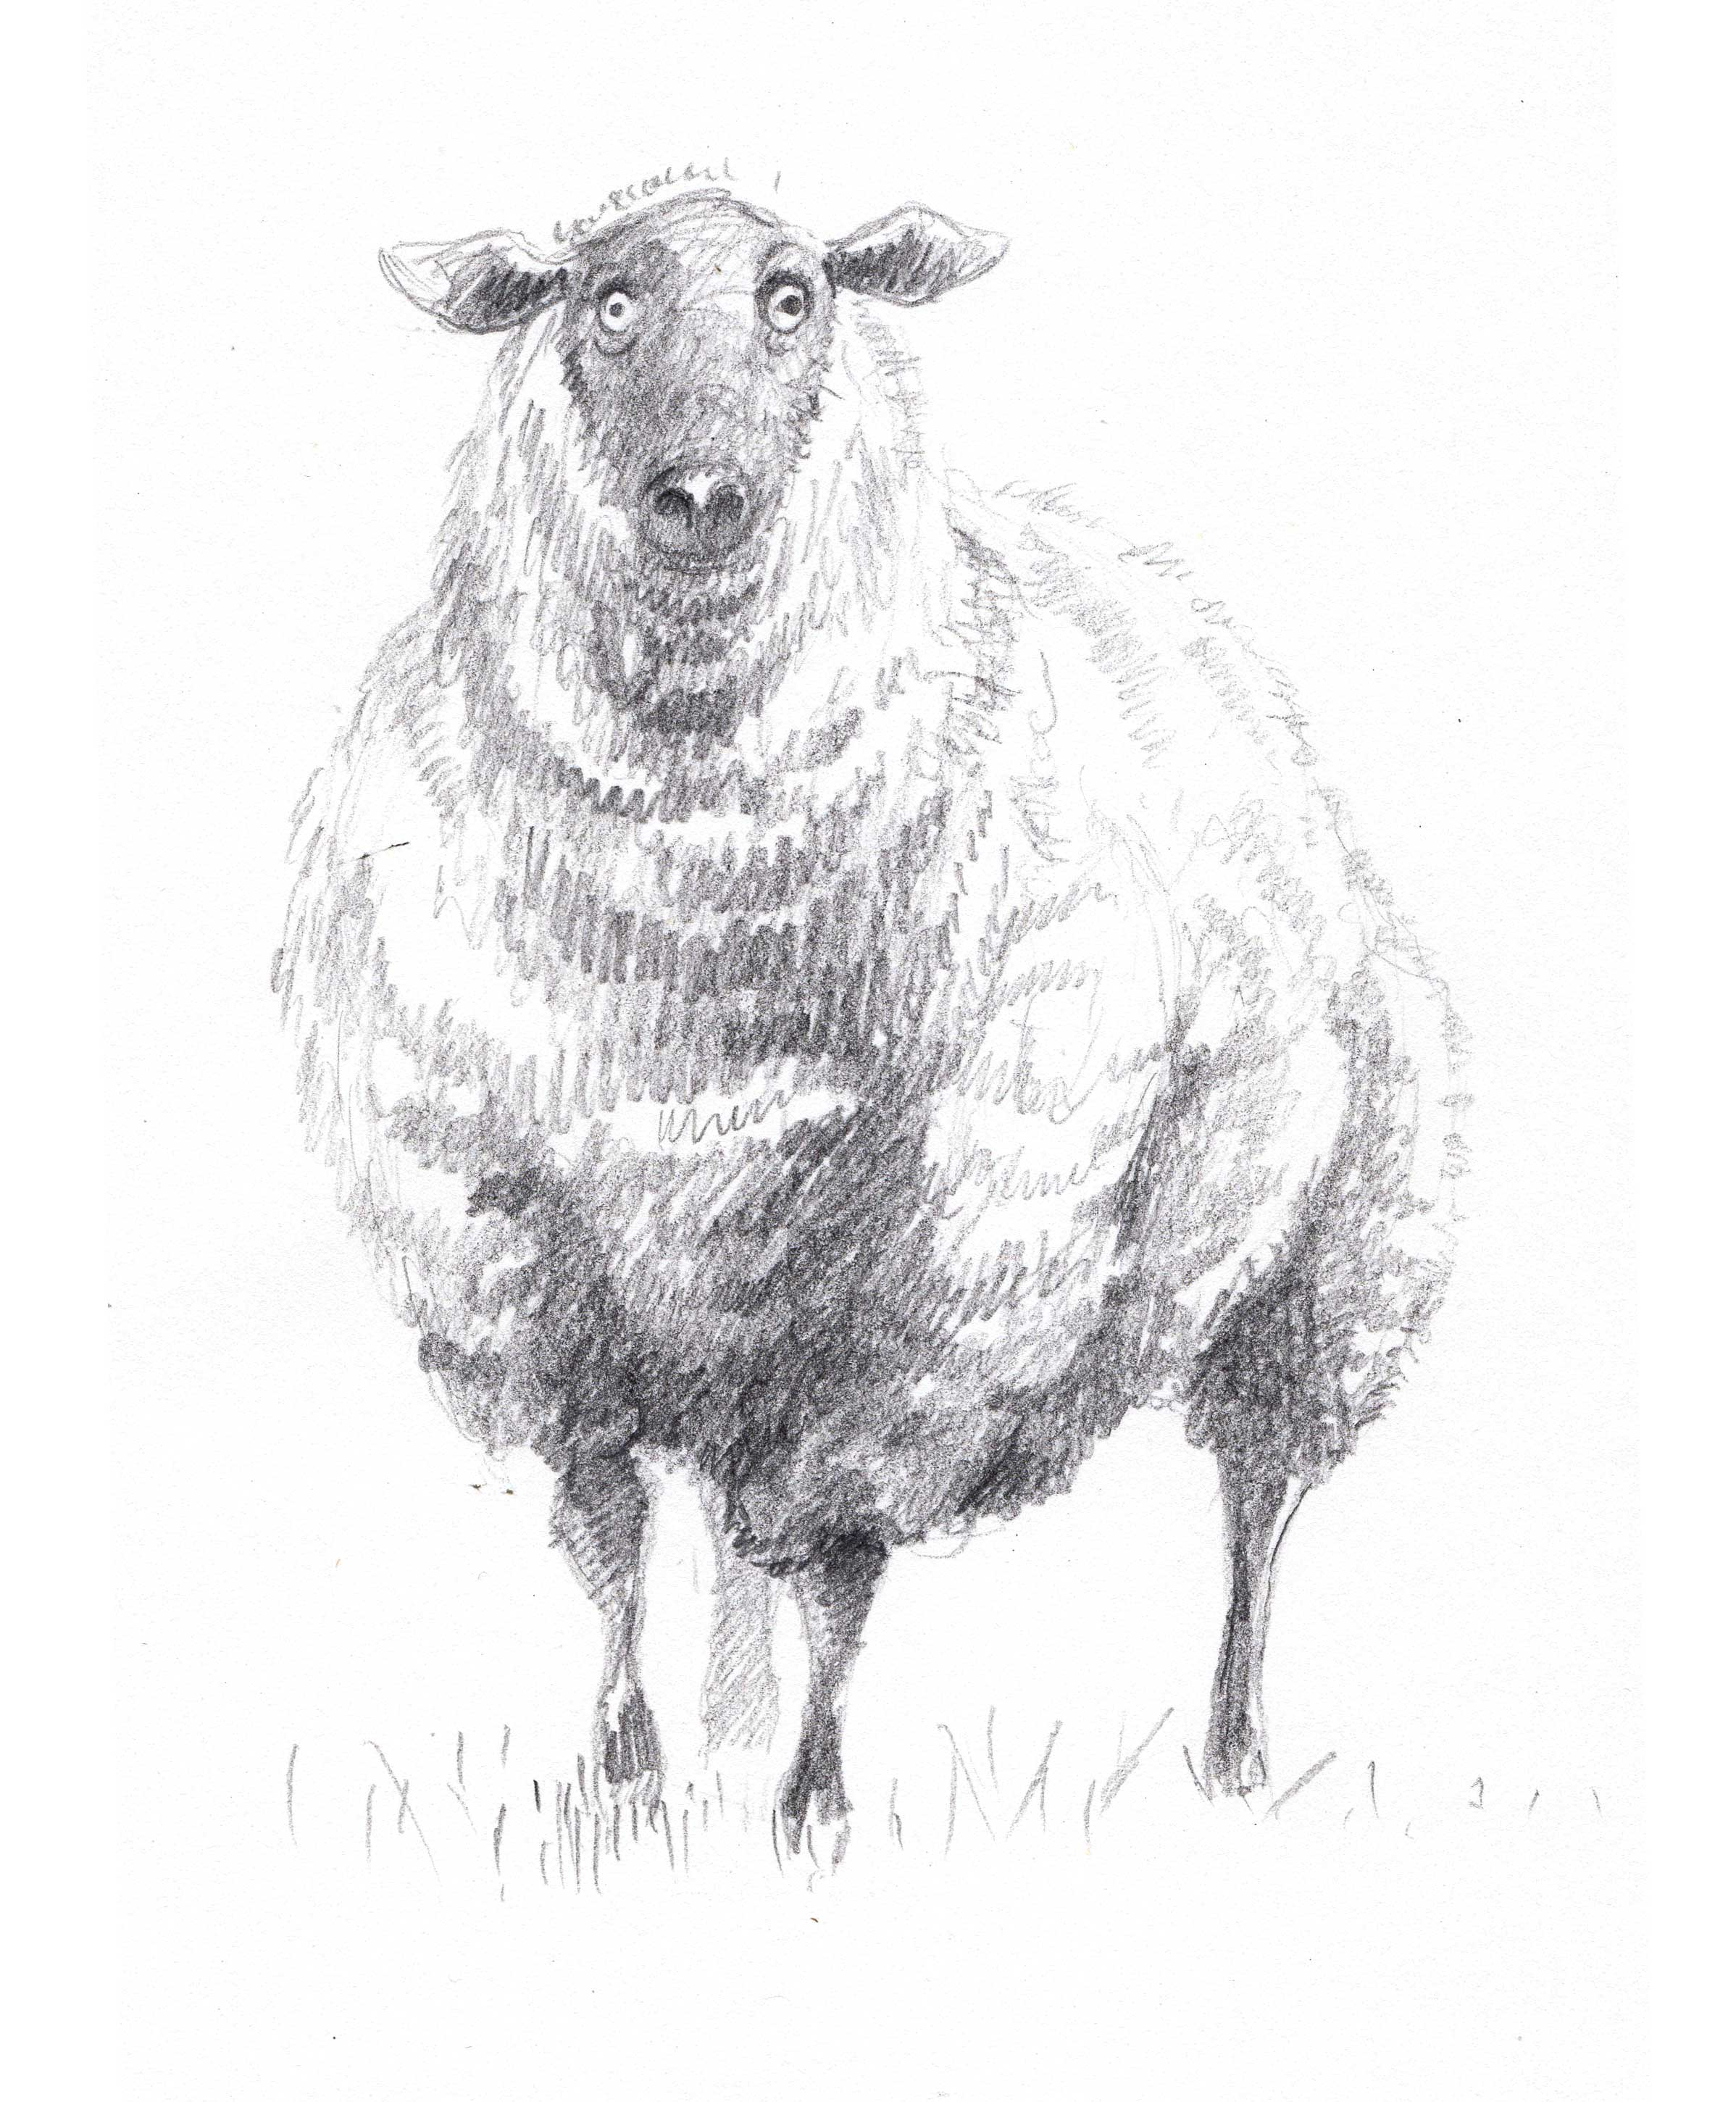 Sheep, Priscilla Tey, Illustration Art